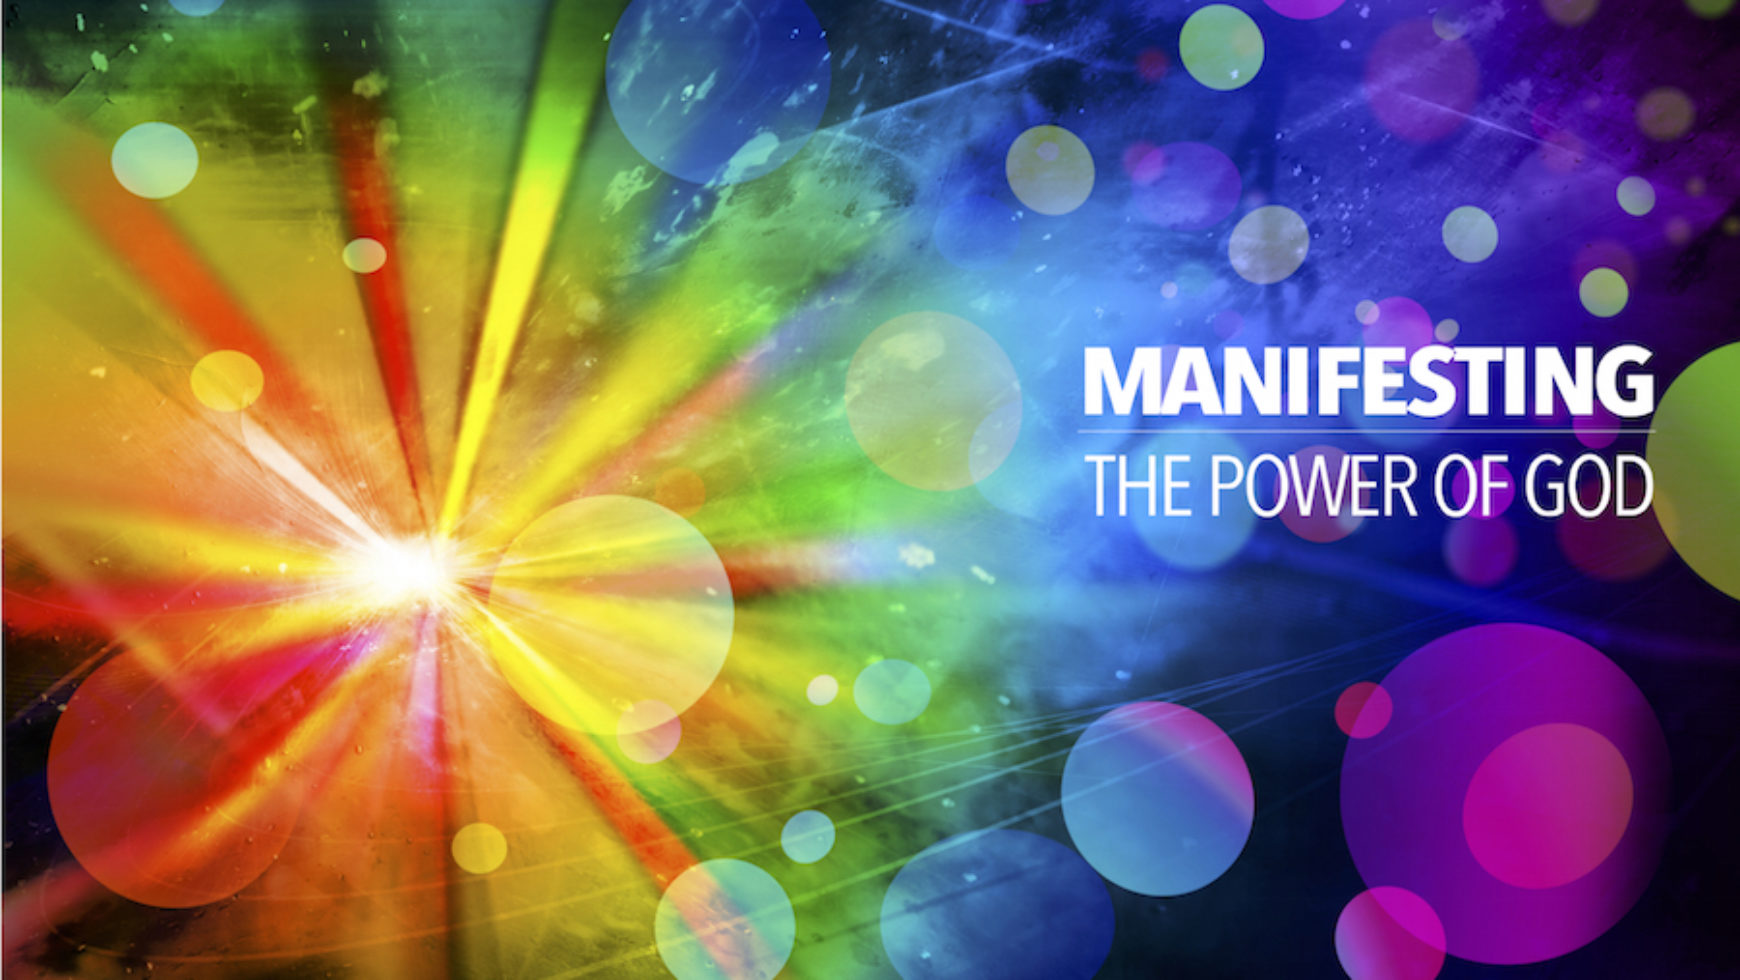 Manifesting the Power of God